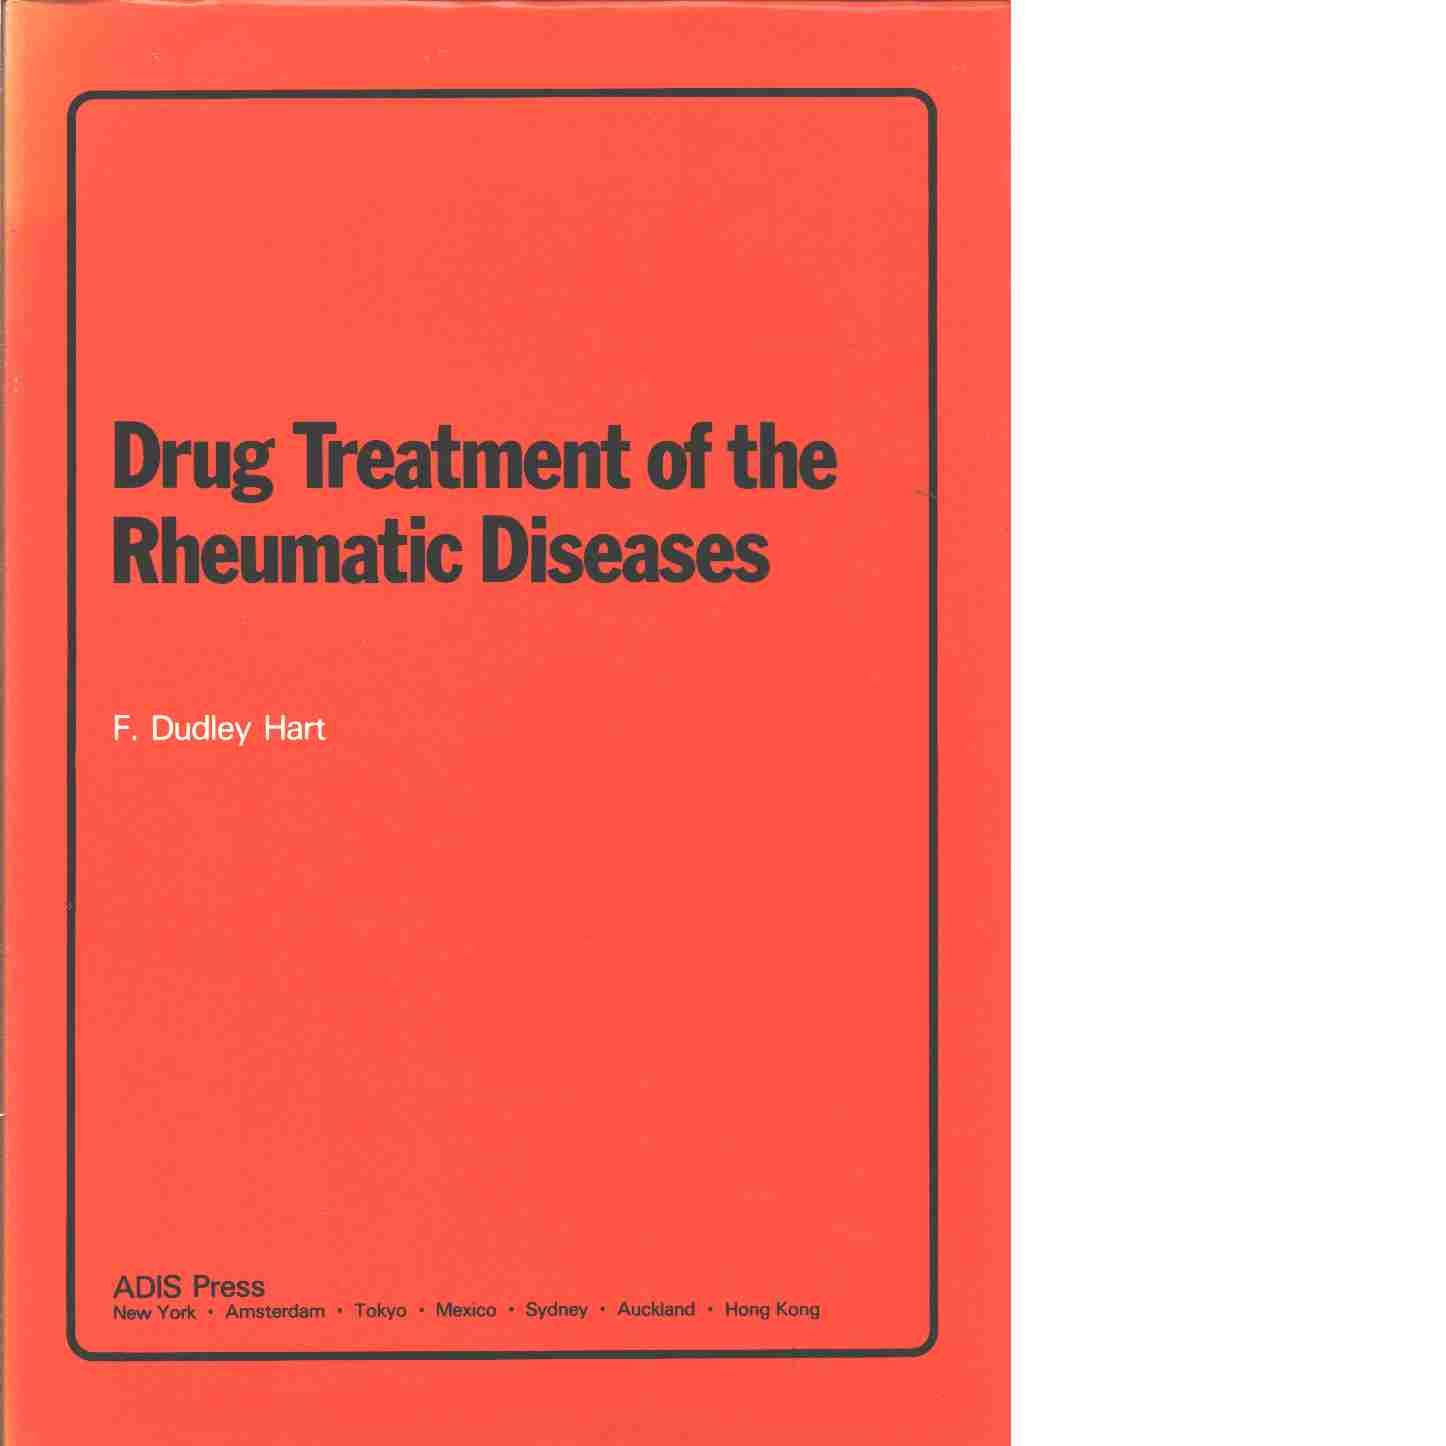 Drug treatment of the rheumatic diseases - Red. Hart, F. Dudley